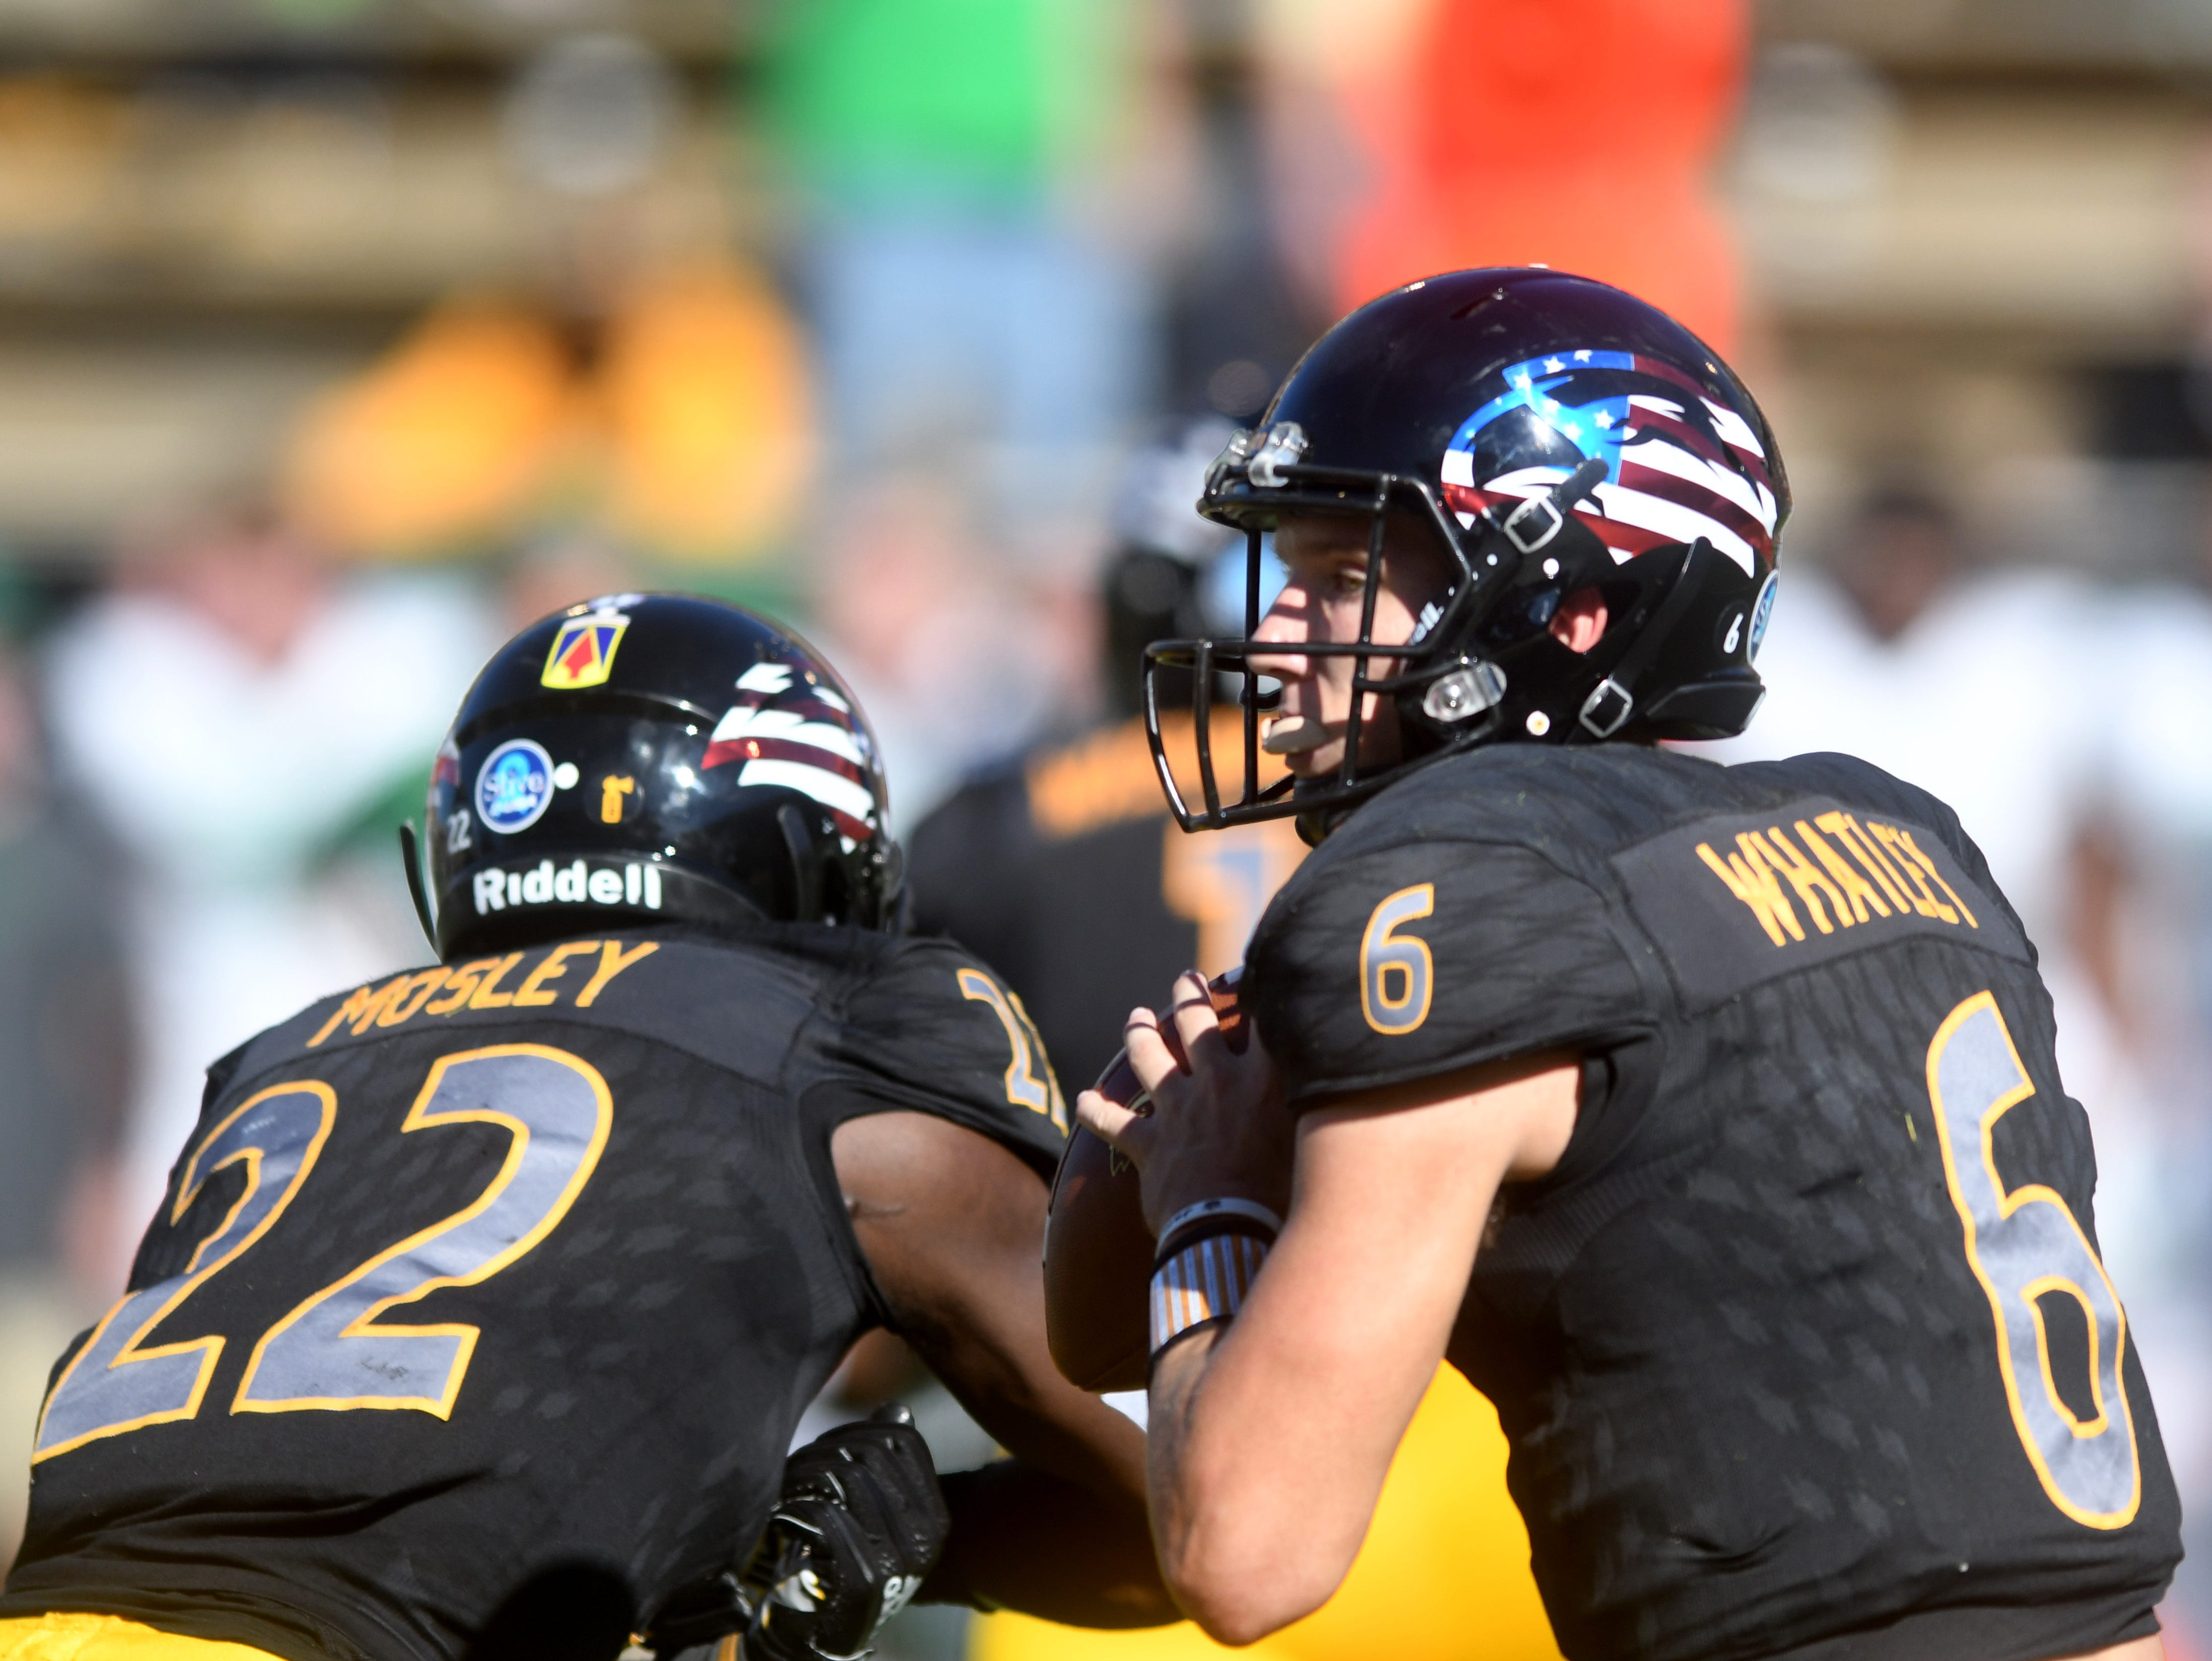 Southern Miss quarterback Tate Whatley looks for a receiver in a game against Marshall at M.M. Roberts Stadium on Saturday, November 3, 2018.